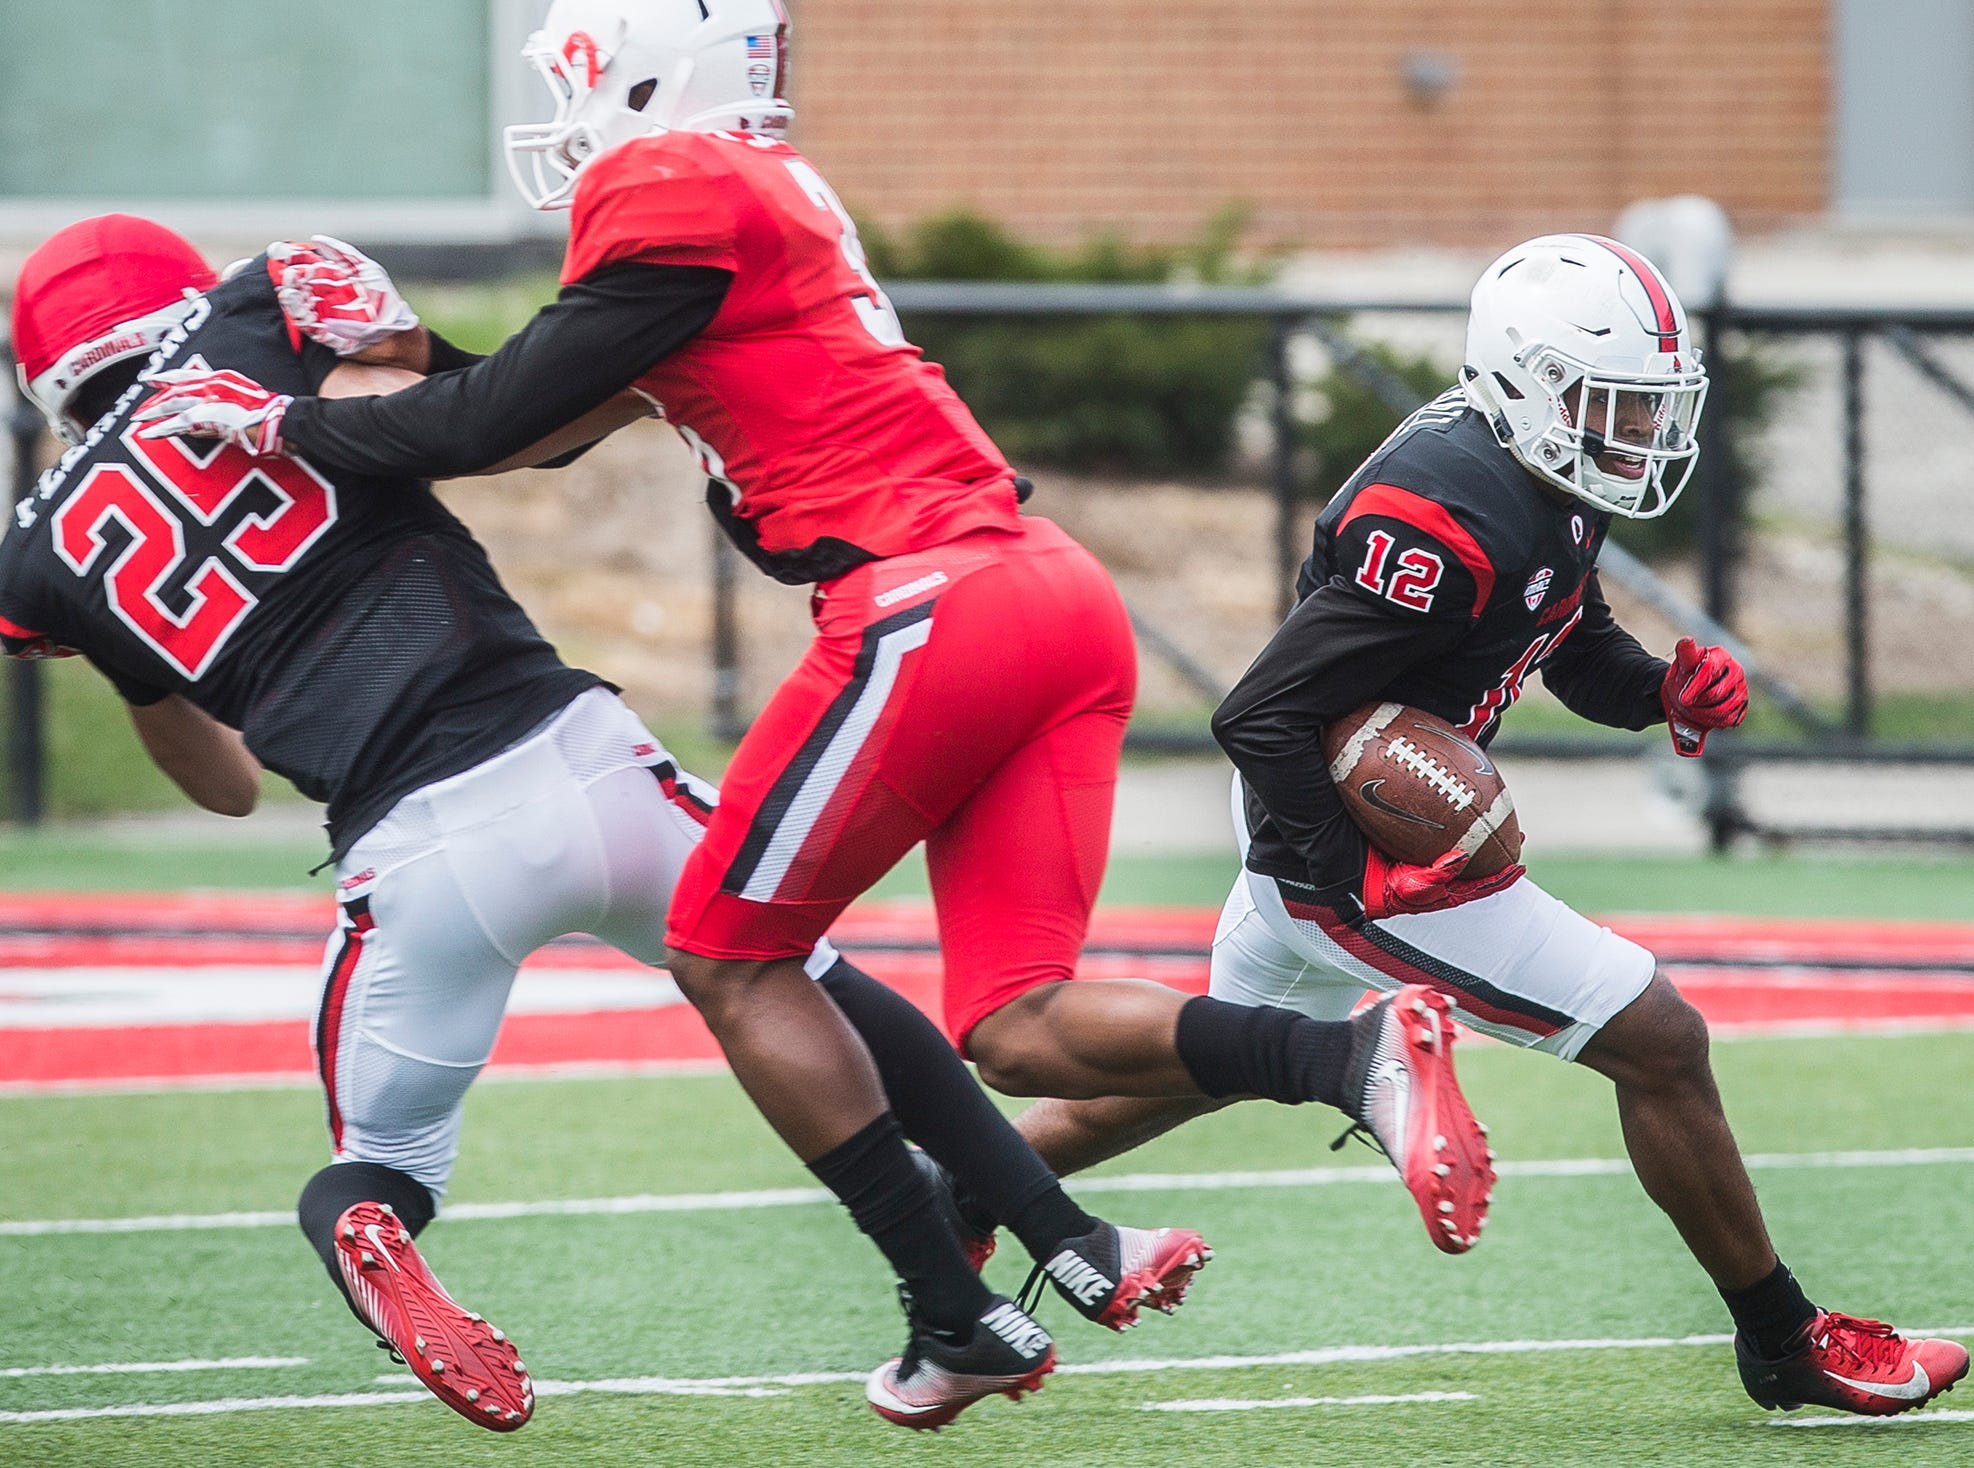 Ball State's Justin Hall slips past defenders during the team's Spring Game at Scheumann Stadium Saturday, April 13, 2019.